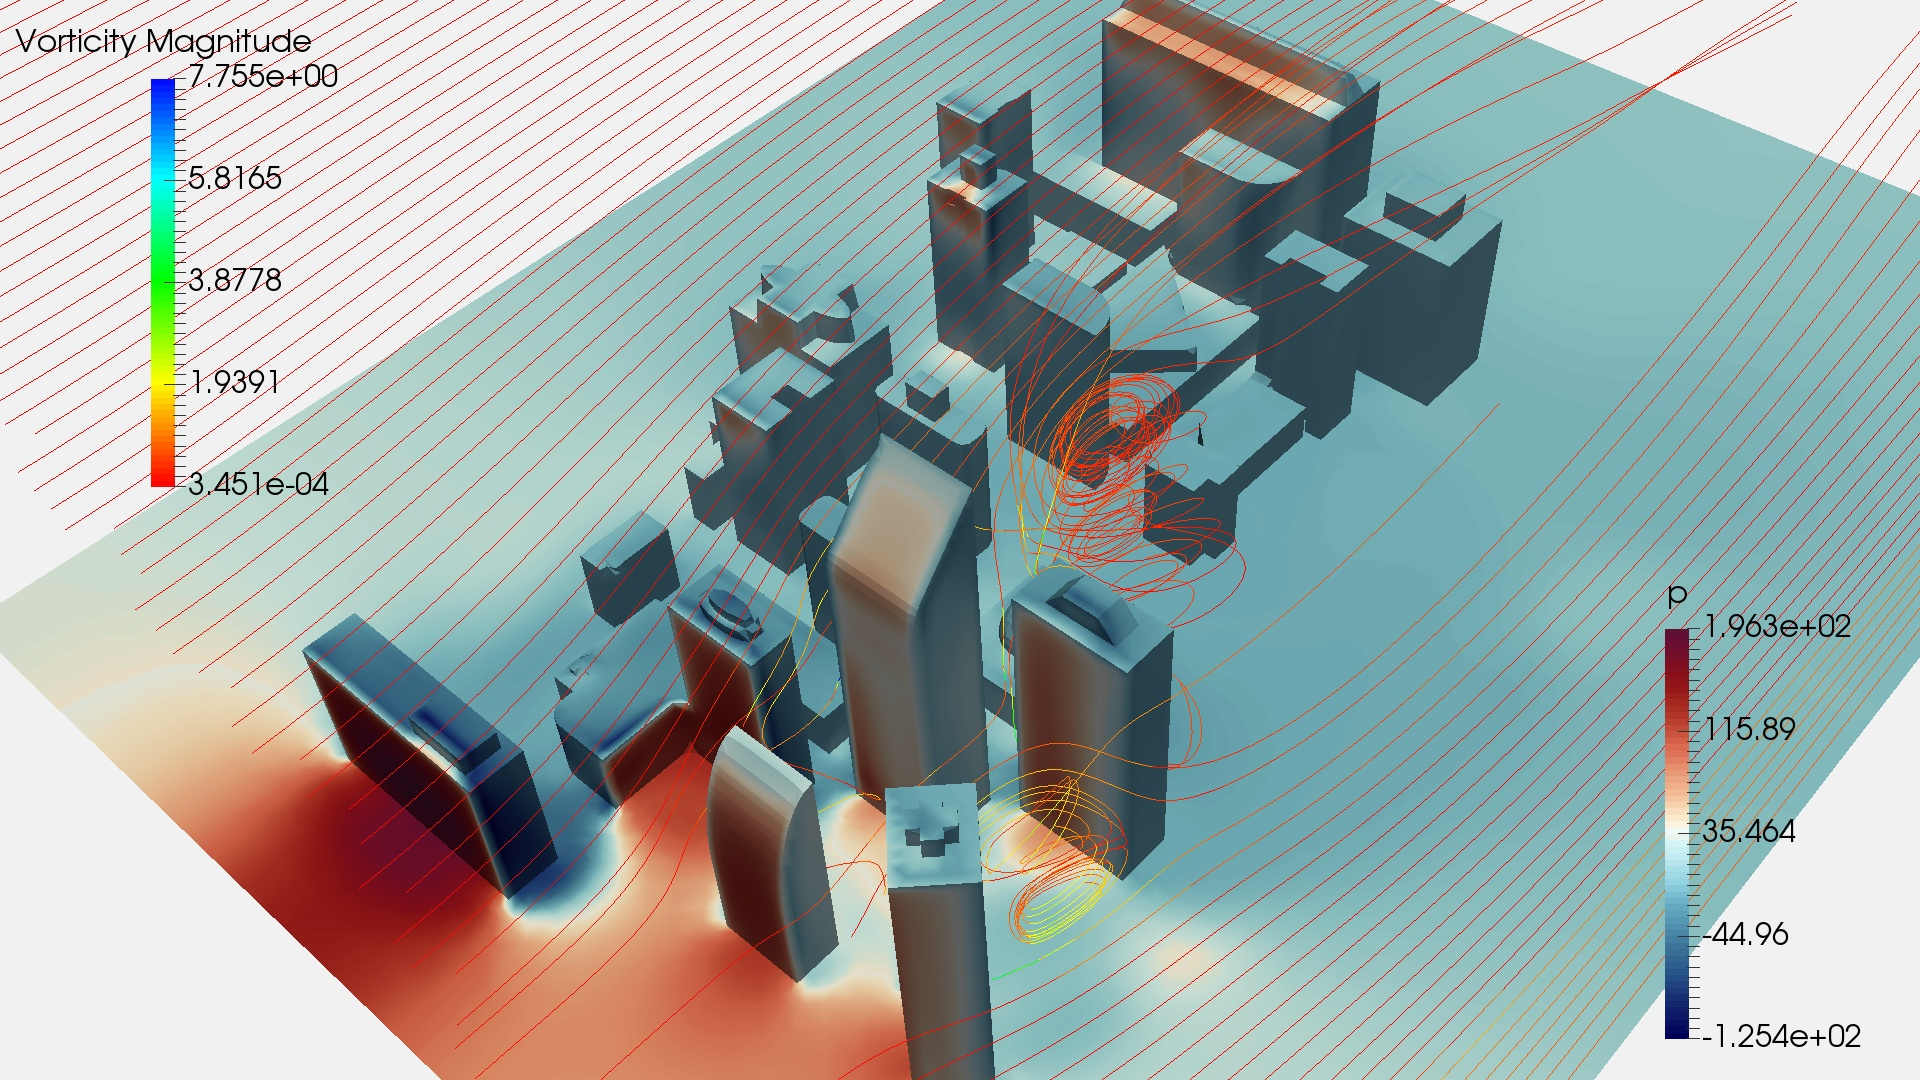 Simulating flow around city buildings with OpenFOAM